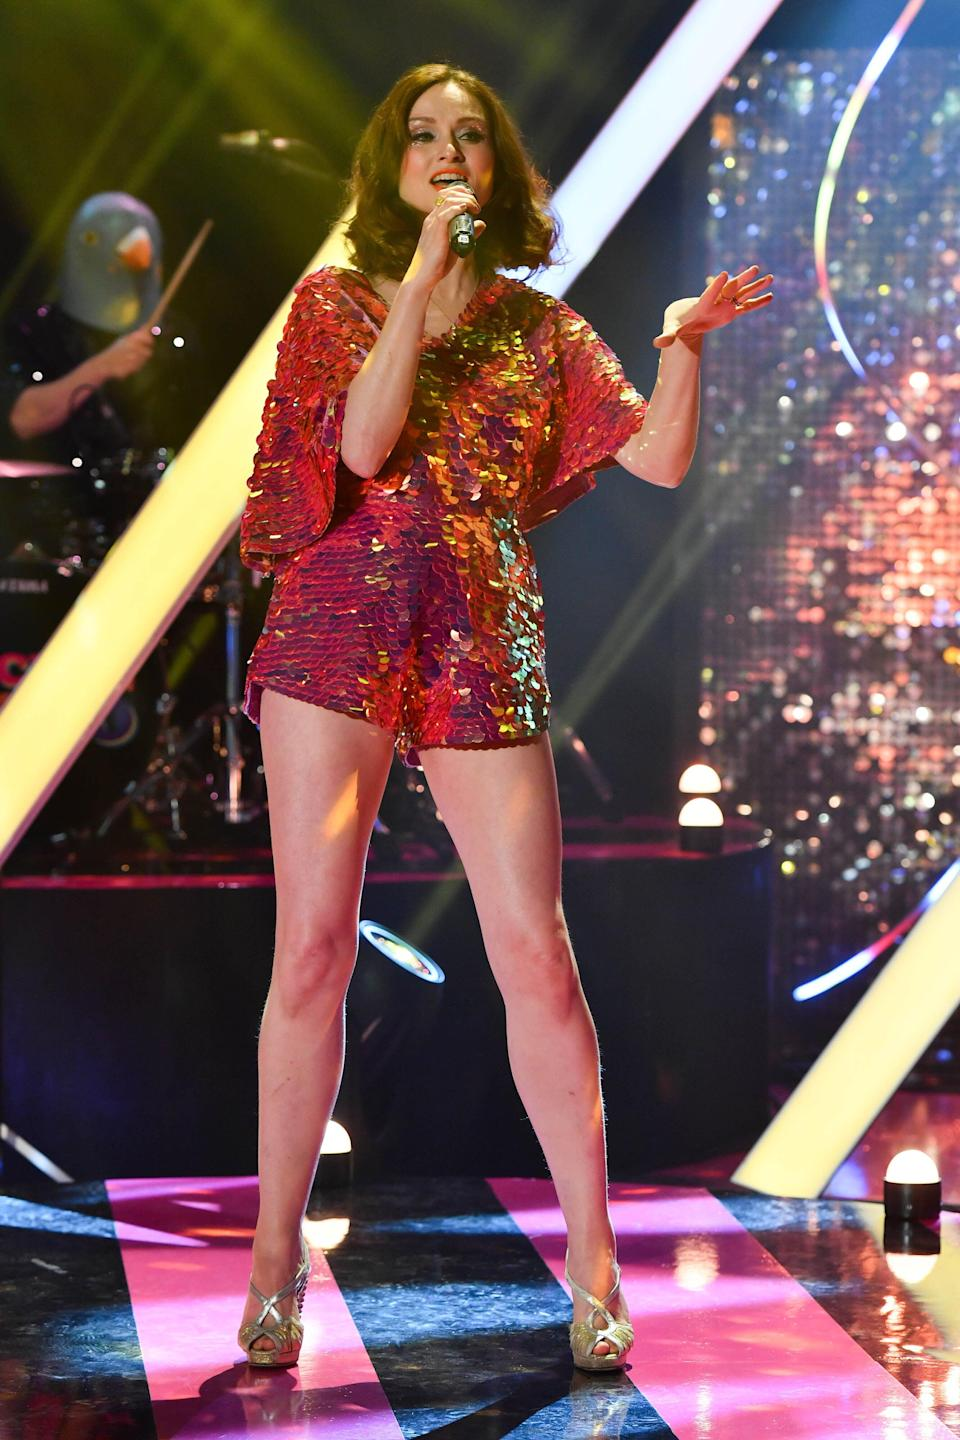 Sophie Ellis-Bextor performs during the filming for the Graham Norton Show (Matt Crossick/PA) (PA Archive)